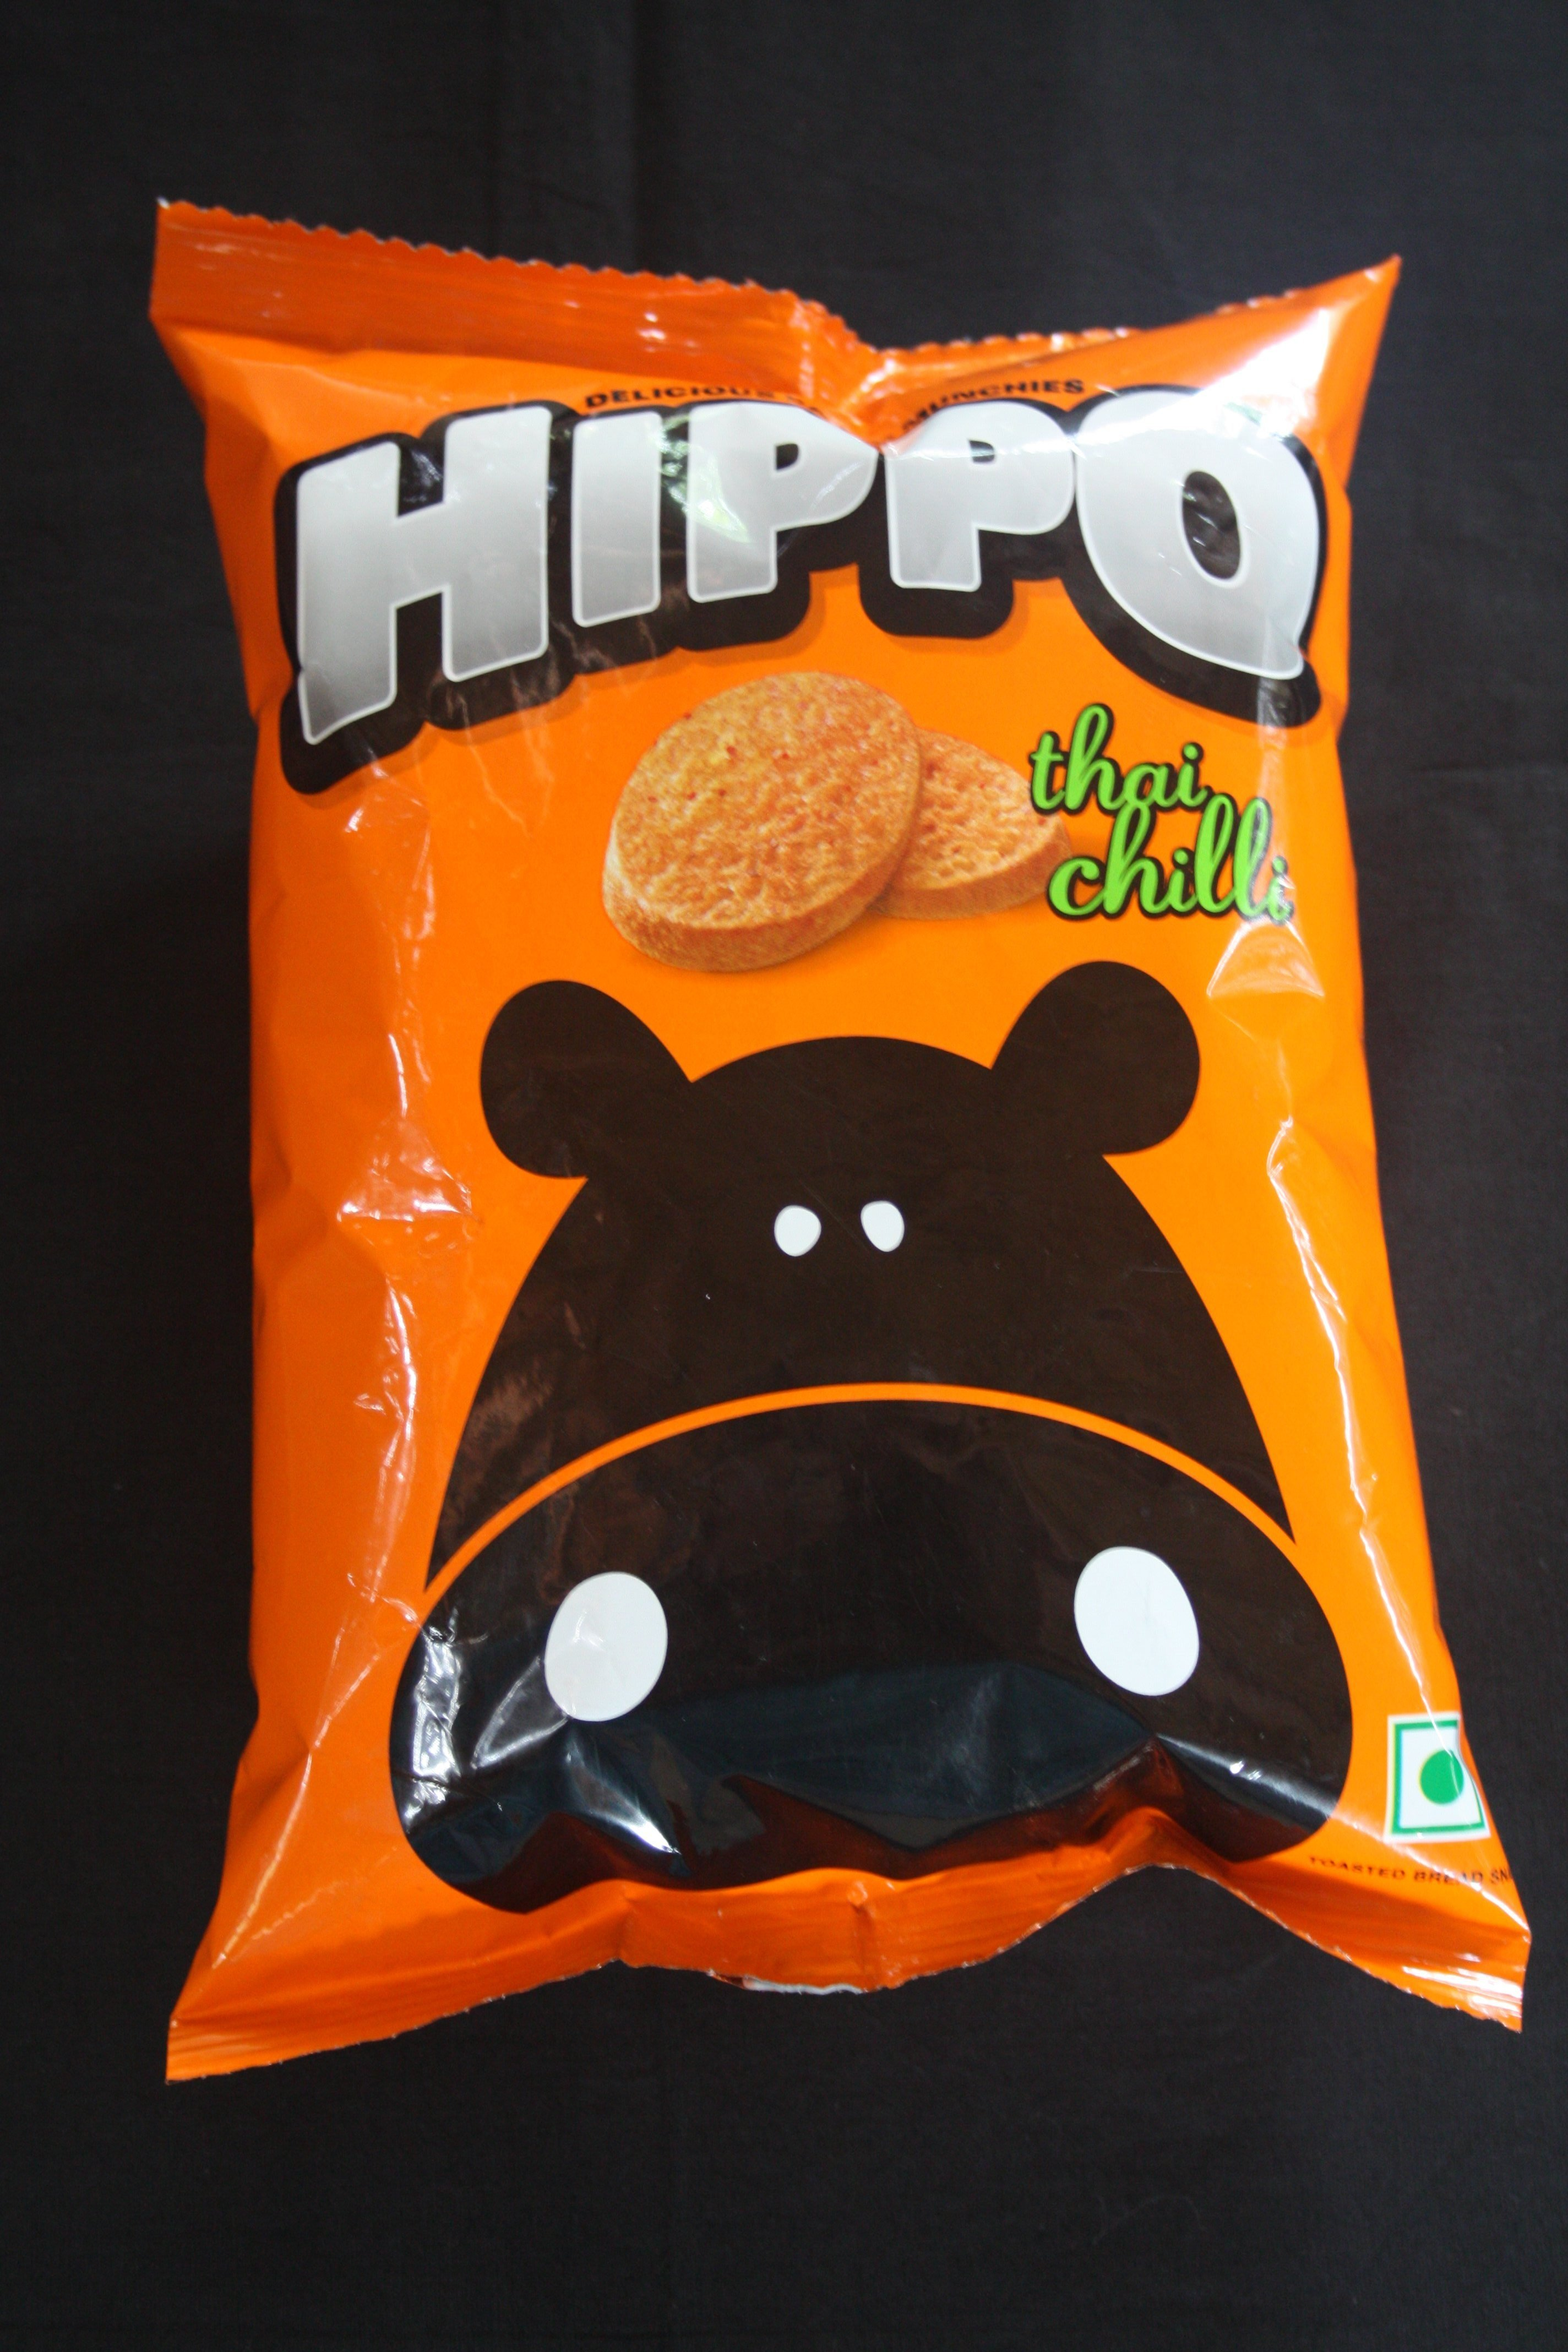 Hippo - food snack pack by Parle Agro has differentiated itself from the crowd by different packaging